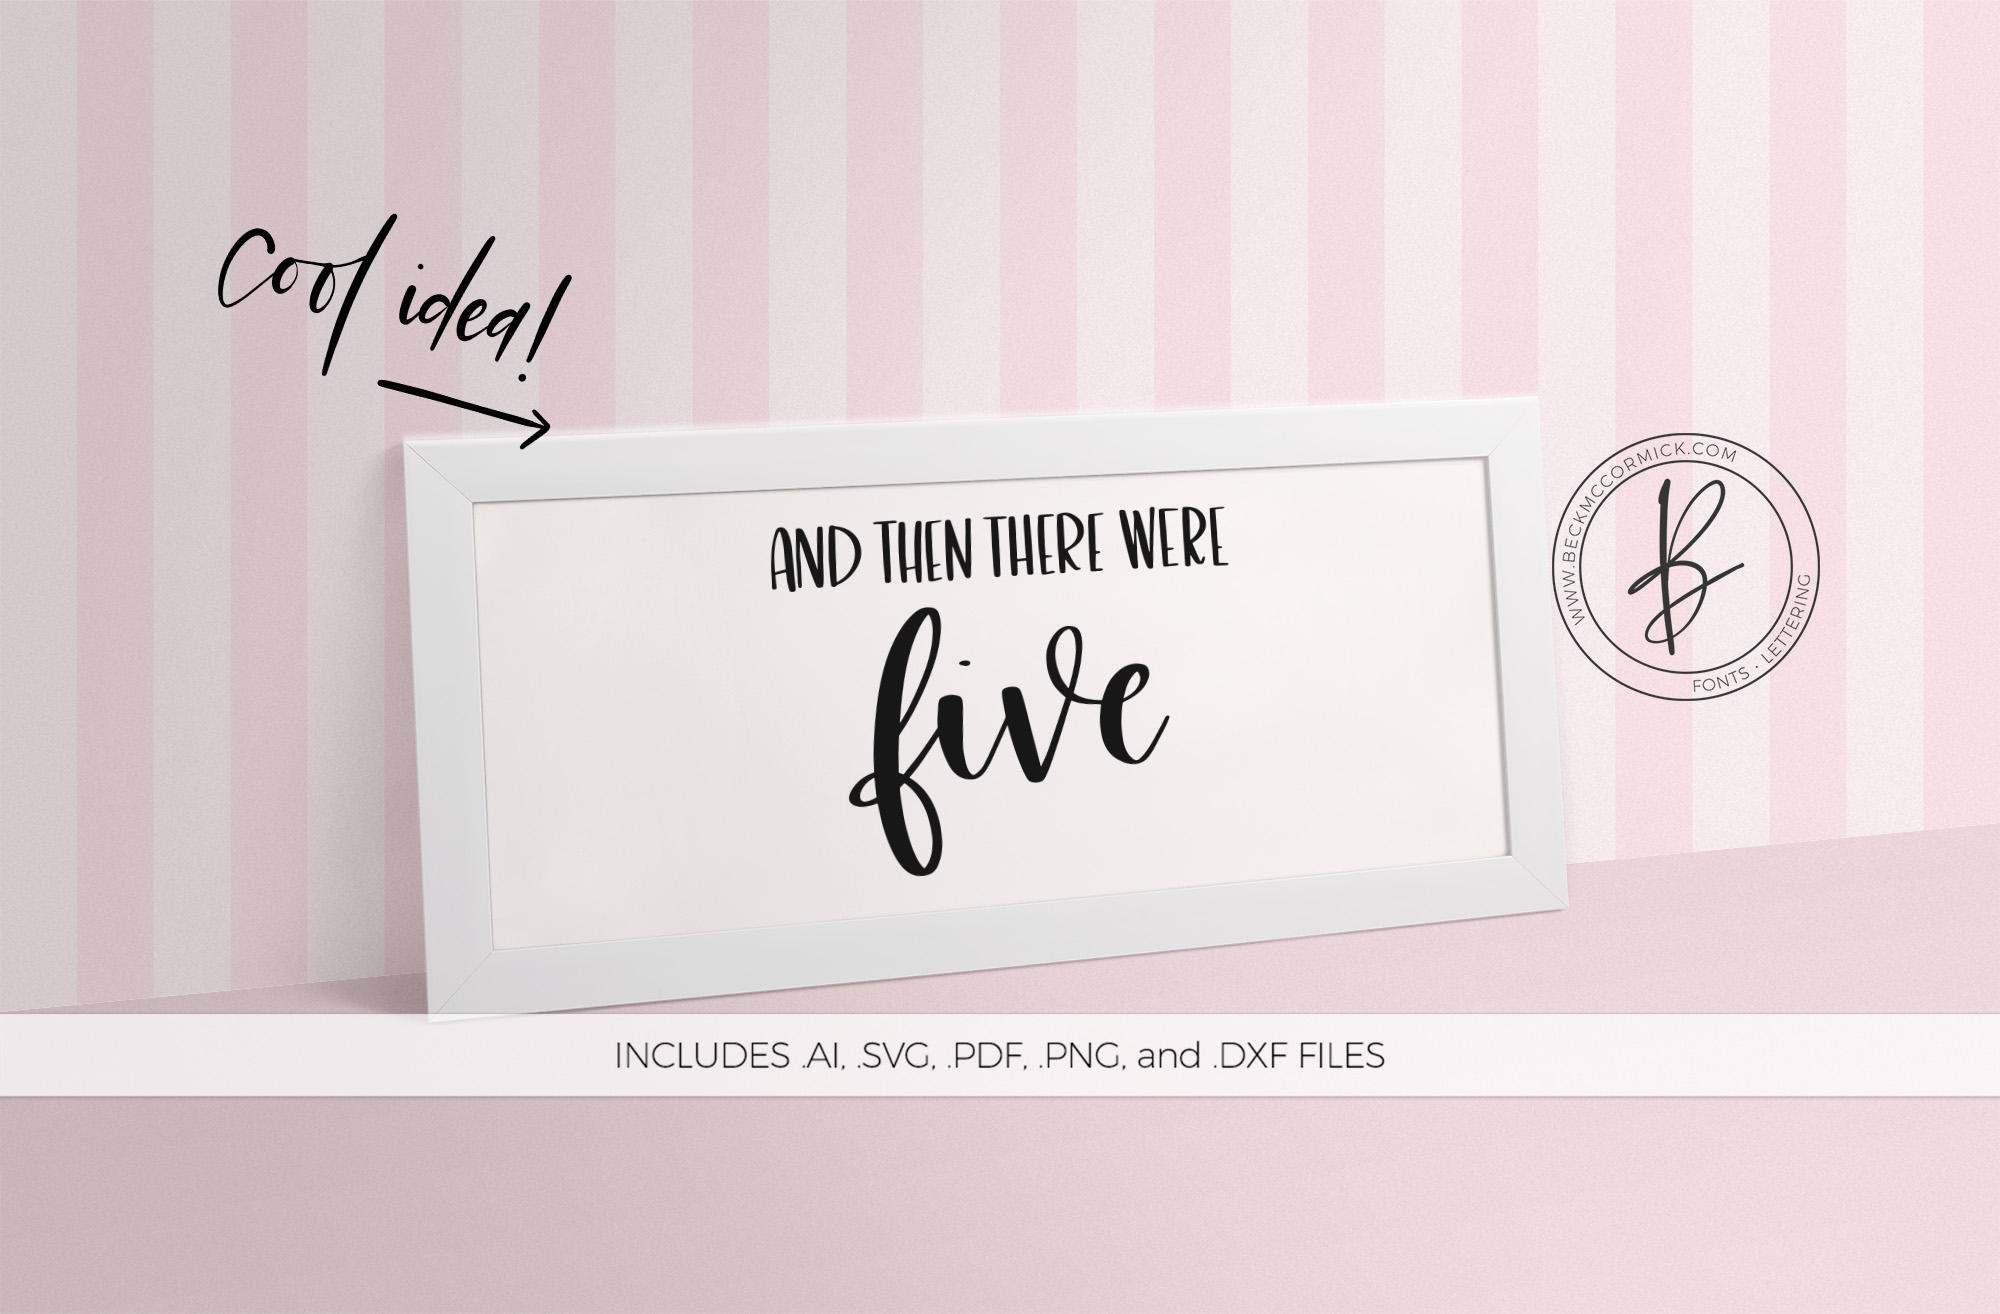 Download Free And Then There Were Five Graphic By Beckmccormick Creative Fabrica for Cricut Explore, Silhouette and other cutting machines.